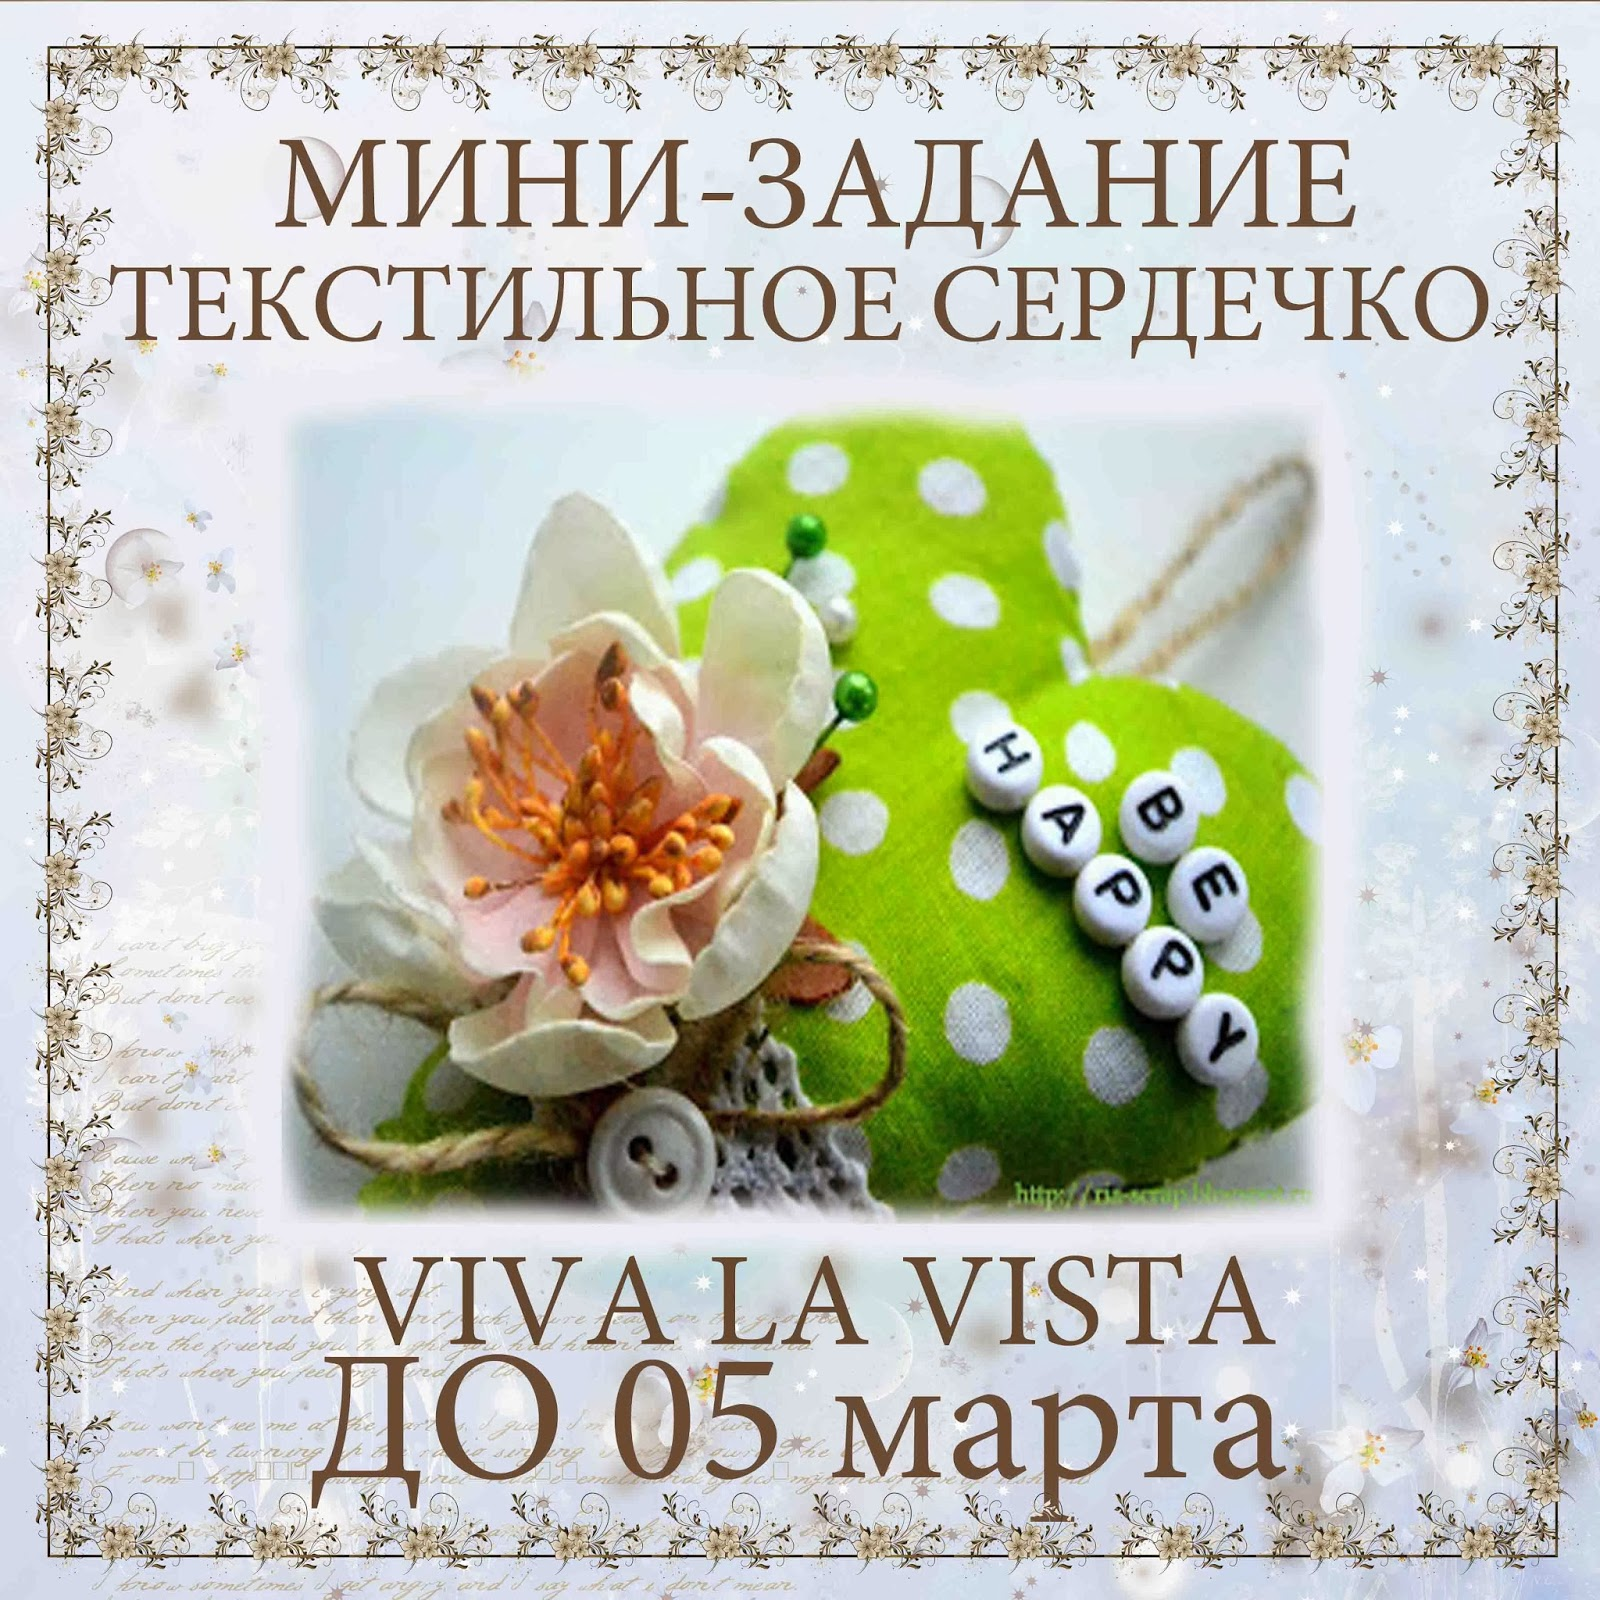 http://vlvista.blogspot.ru/2014/01/blog-post_14.html